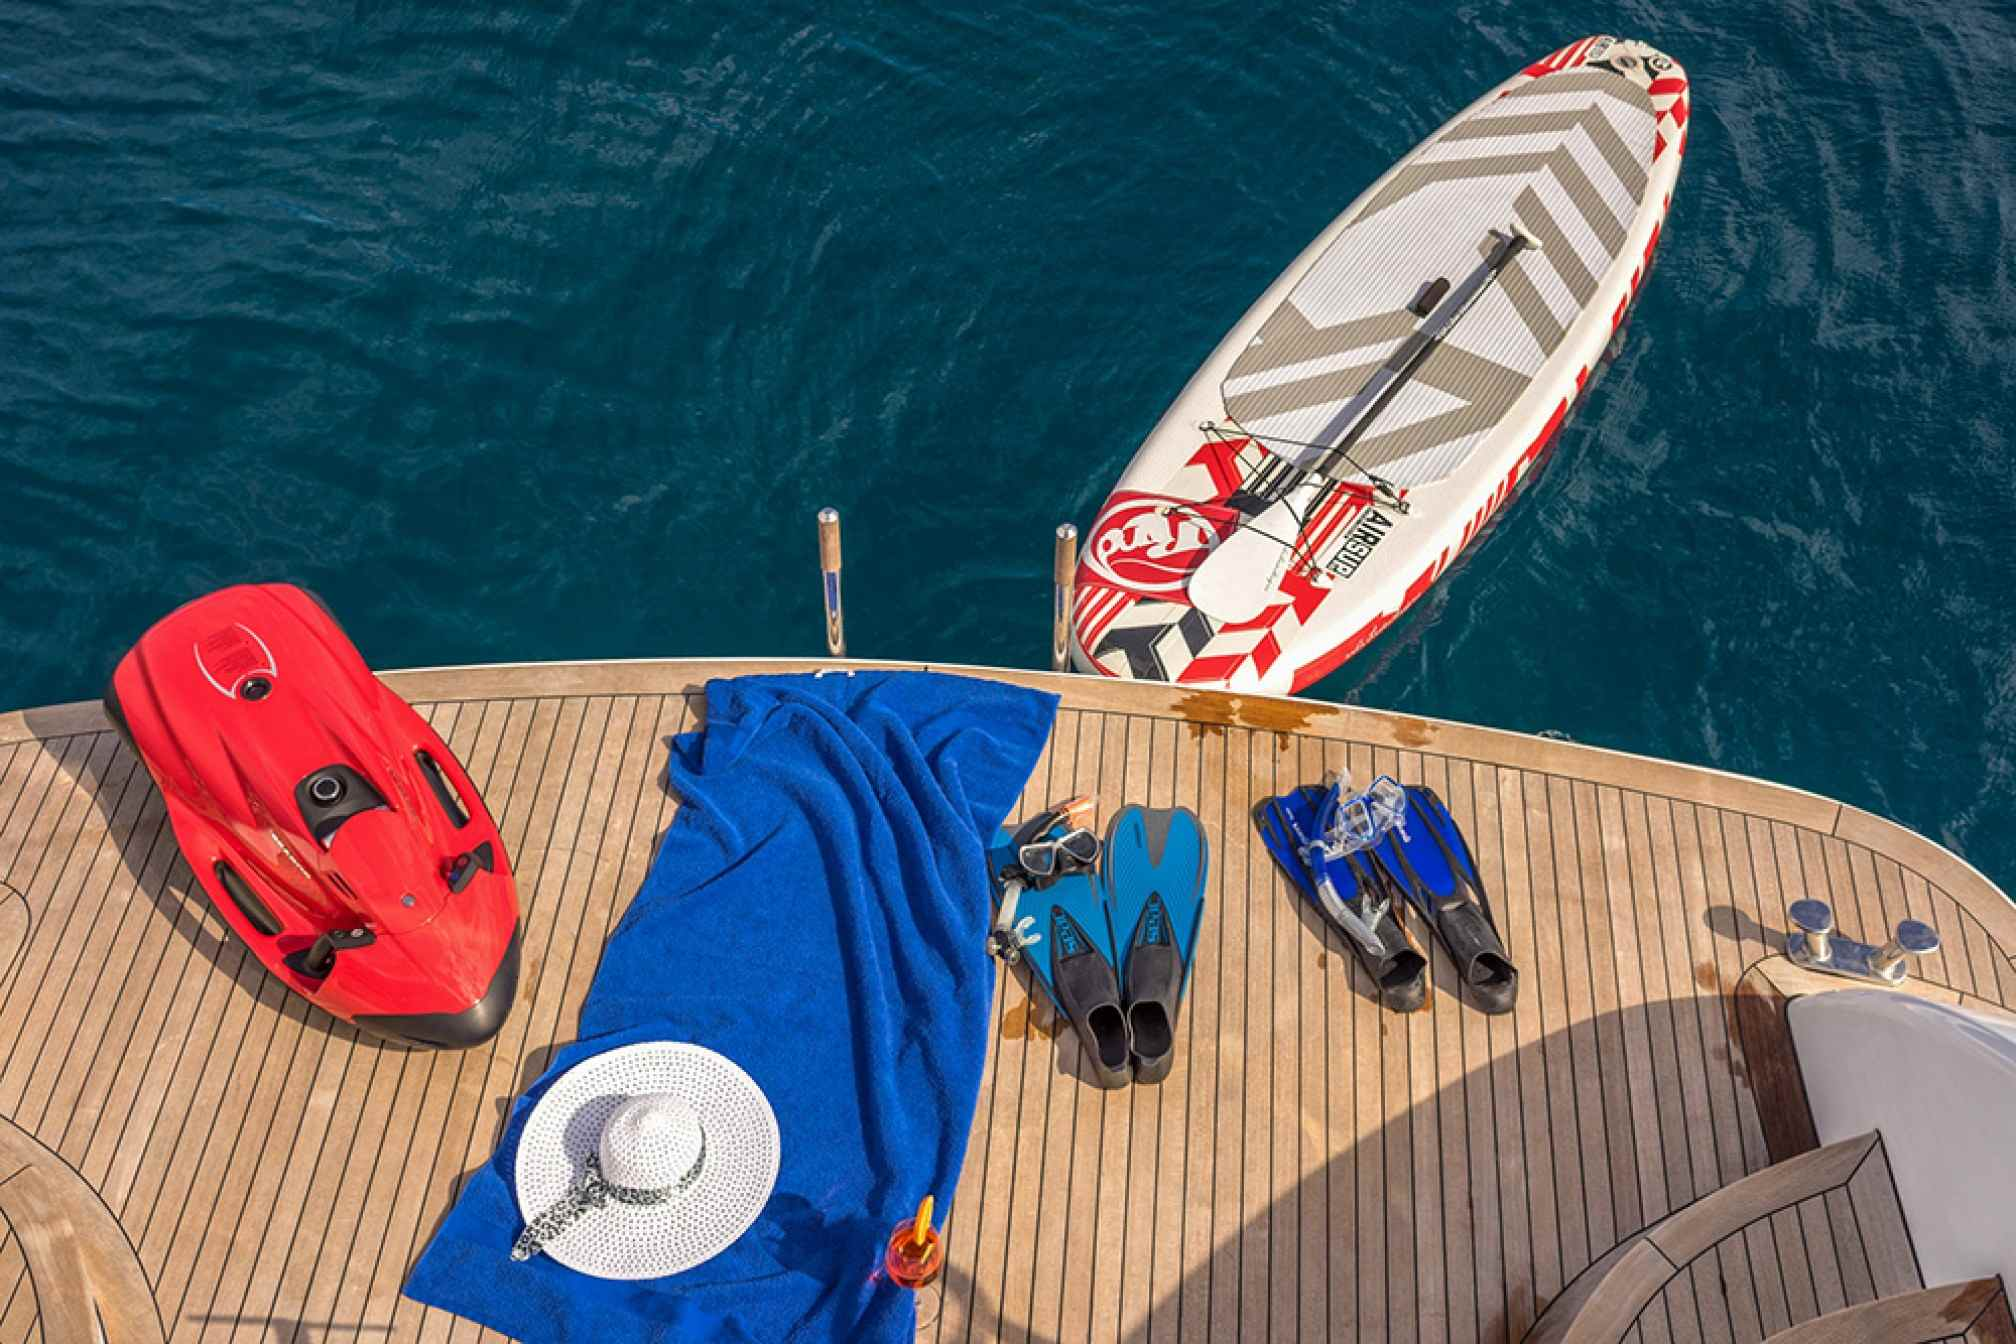 Maiora 20S HOPE I yacht charter water toys